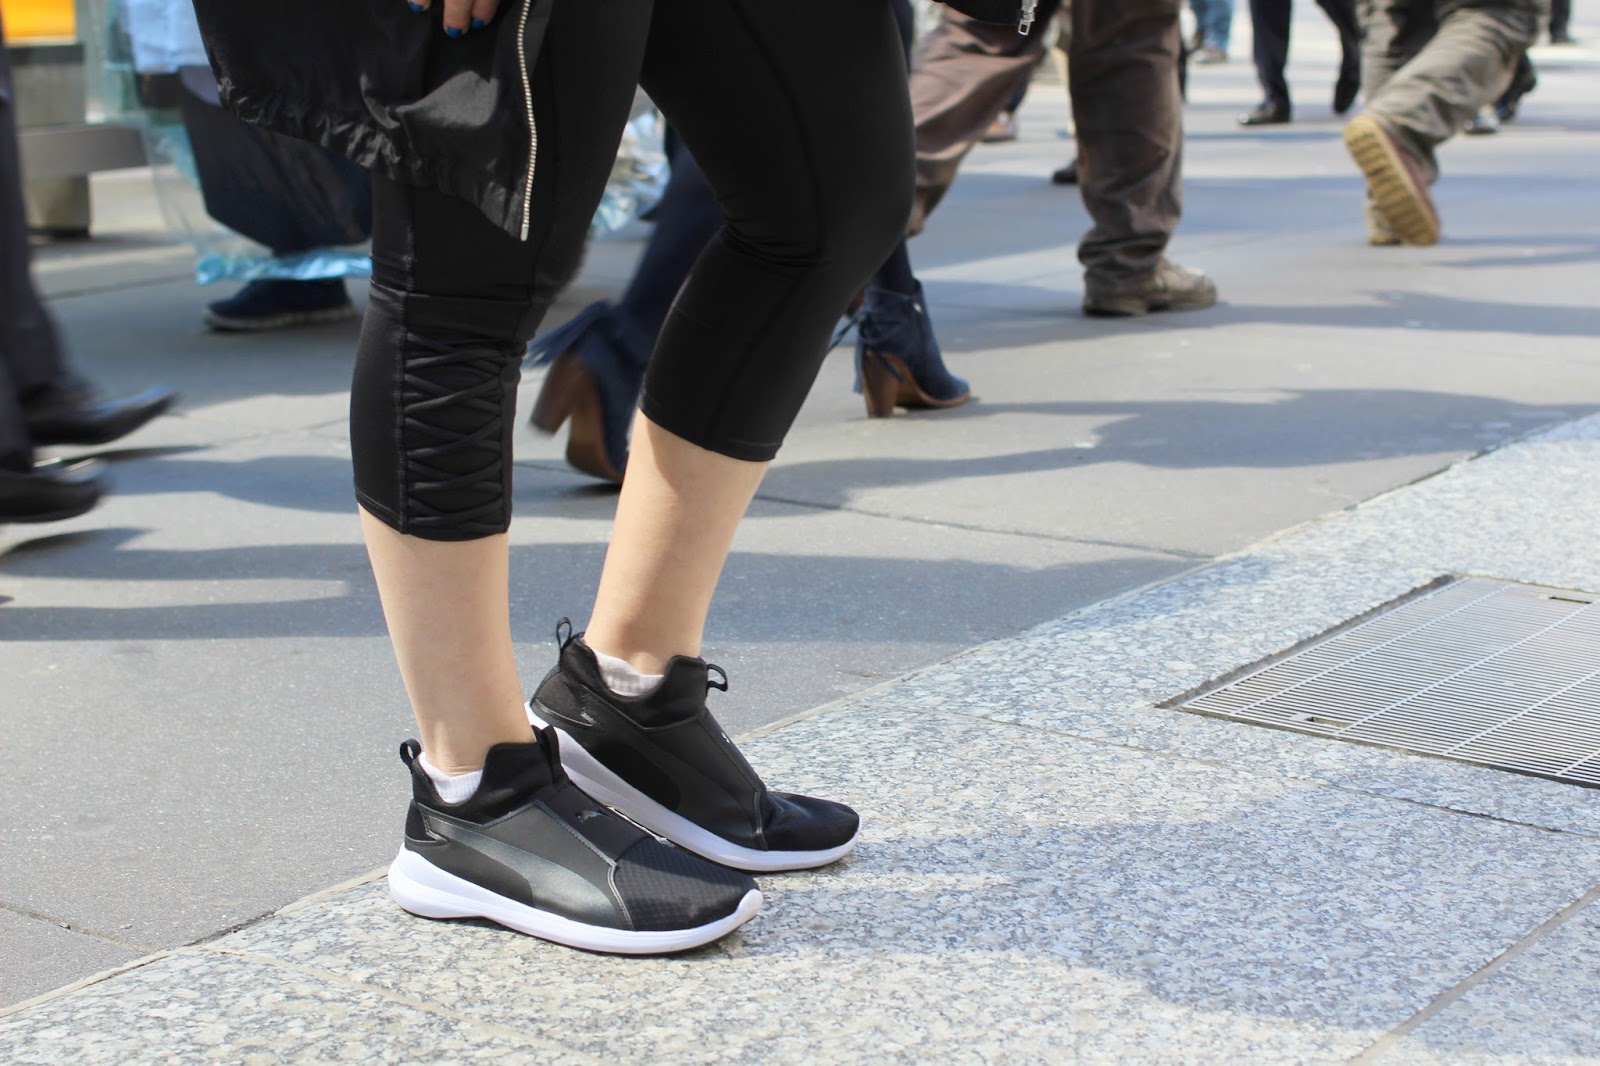 fe24d741df3d ... Rebel Mid Sneakers that I just picked up at Famous Footwear. They re  the perfect combo of street and chic